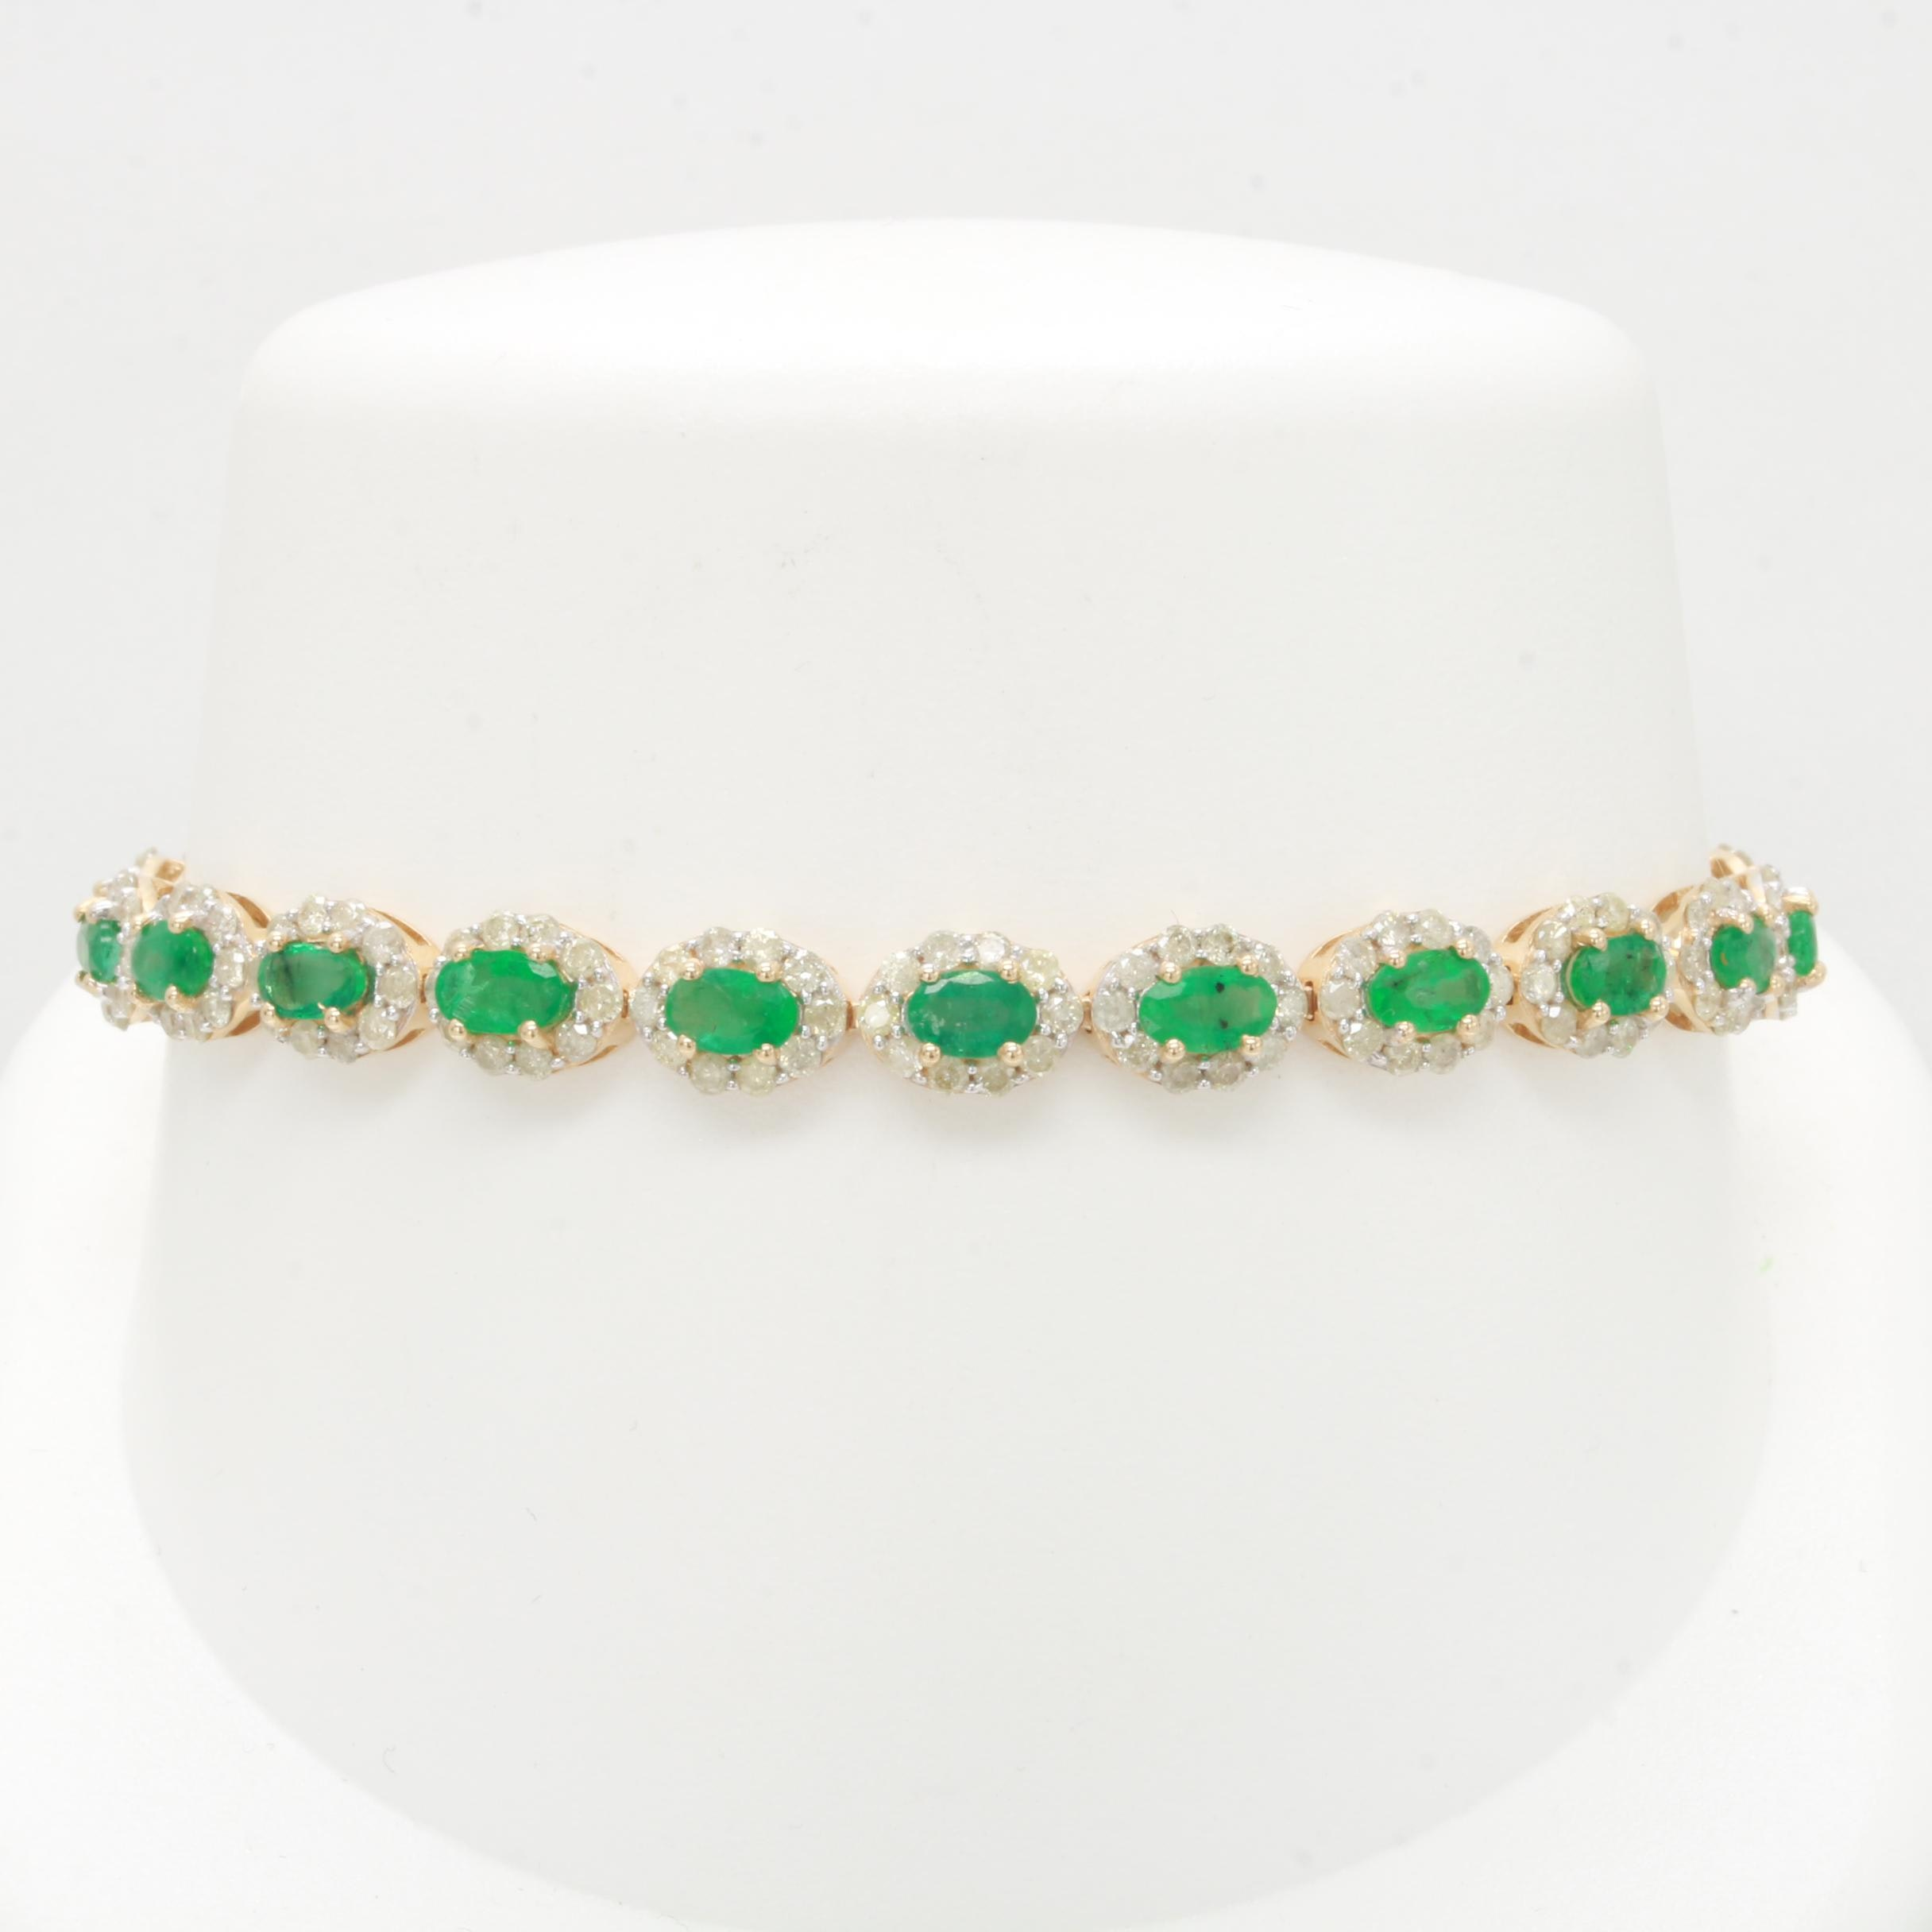 14K Yellow Gold Emerald and 3.55 CTW Diamond Bracelet